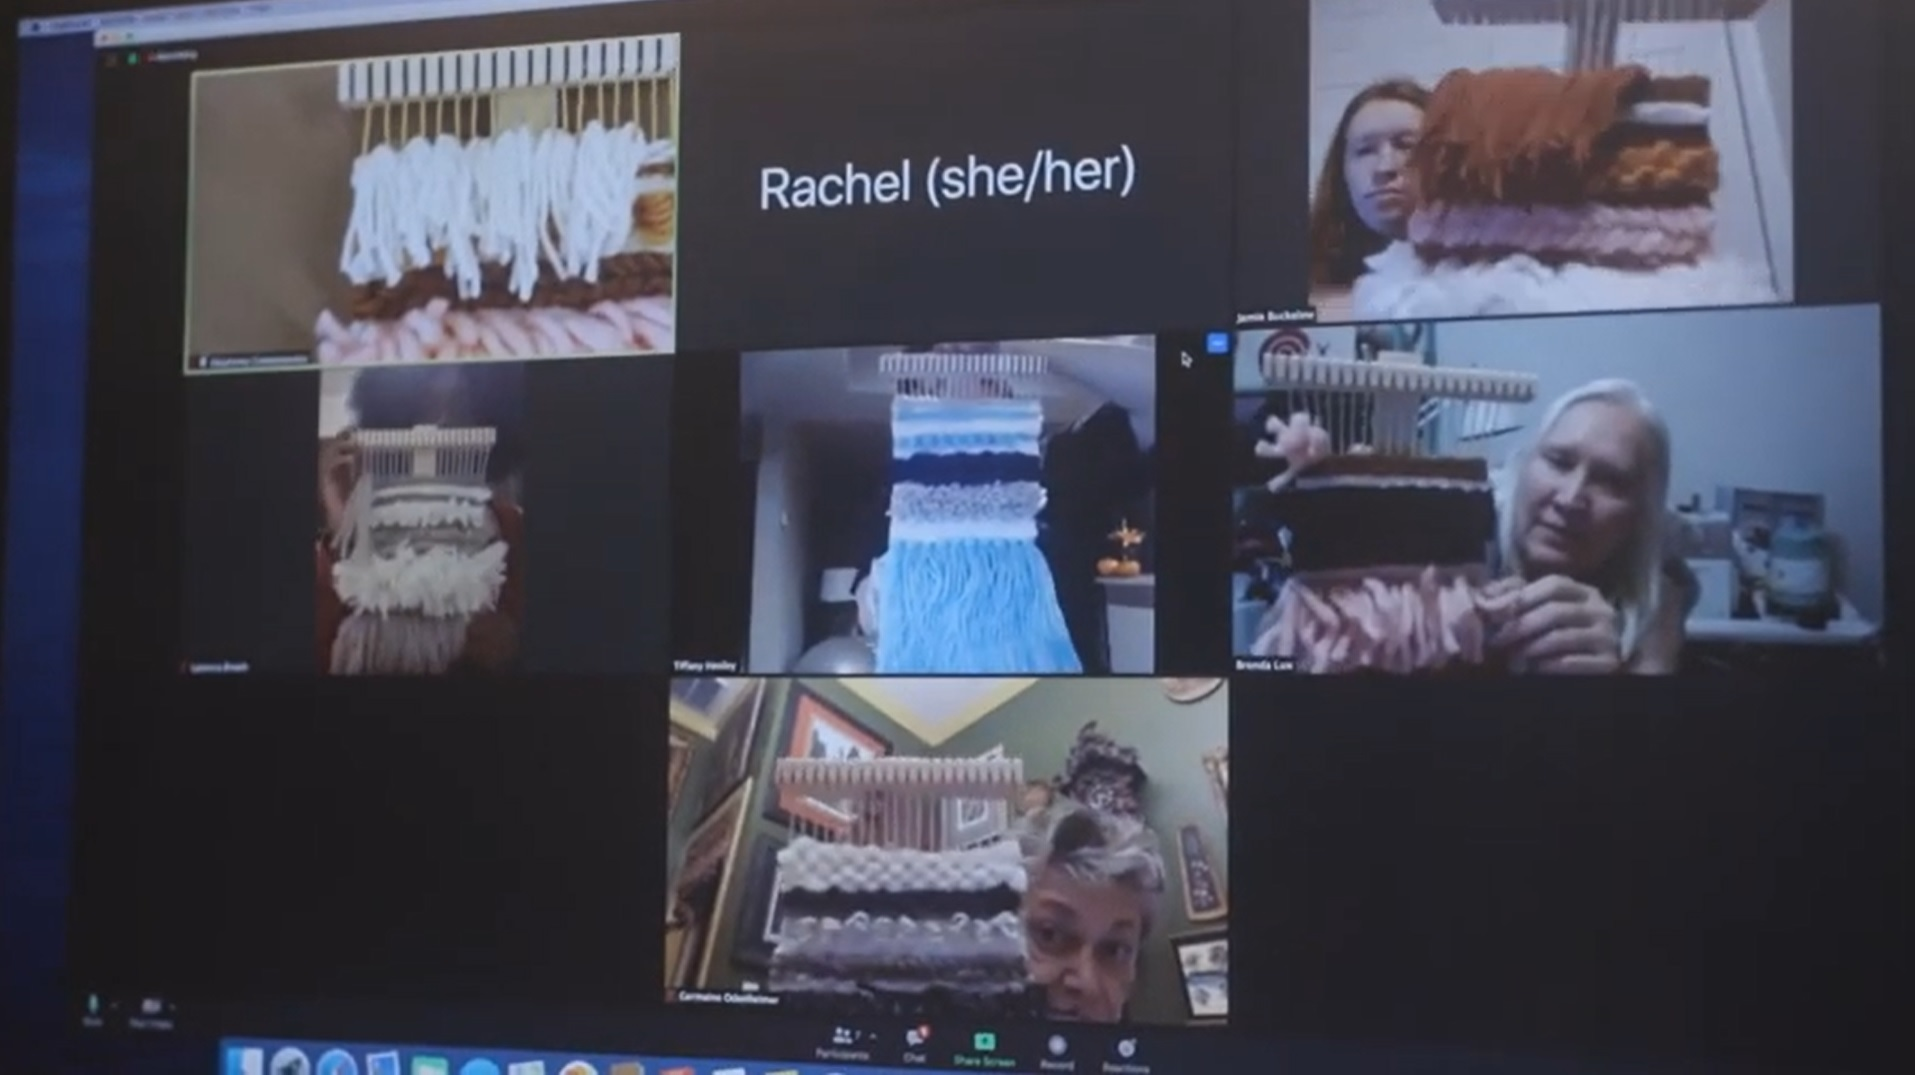 A grid of video chat screens depicting people presenting works of fiber art